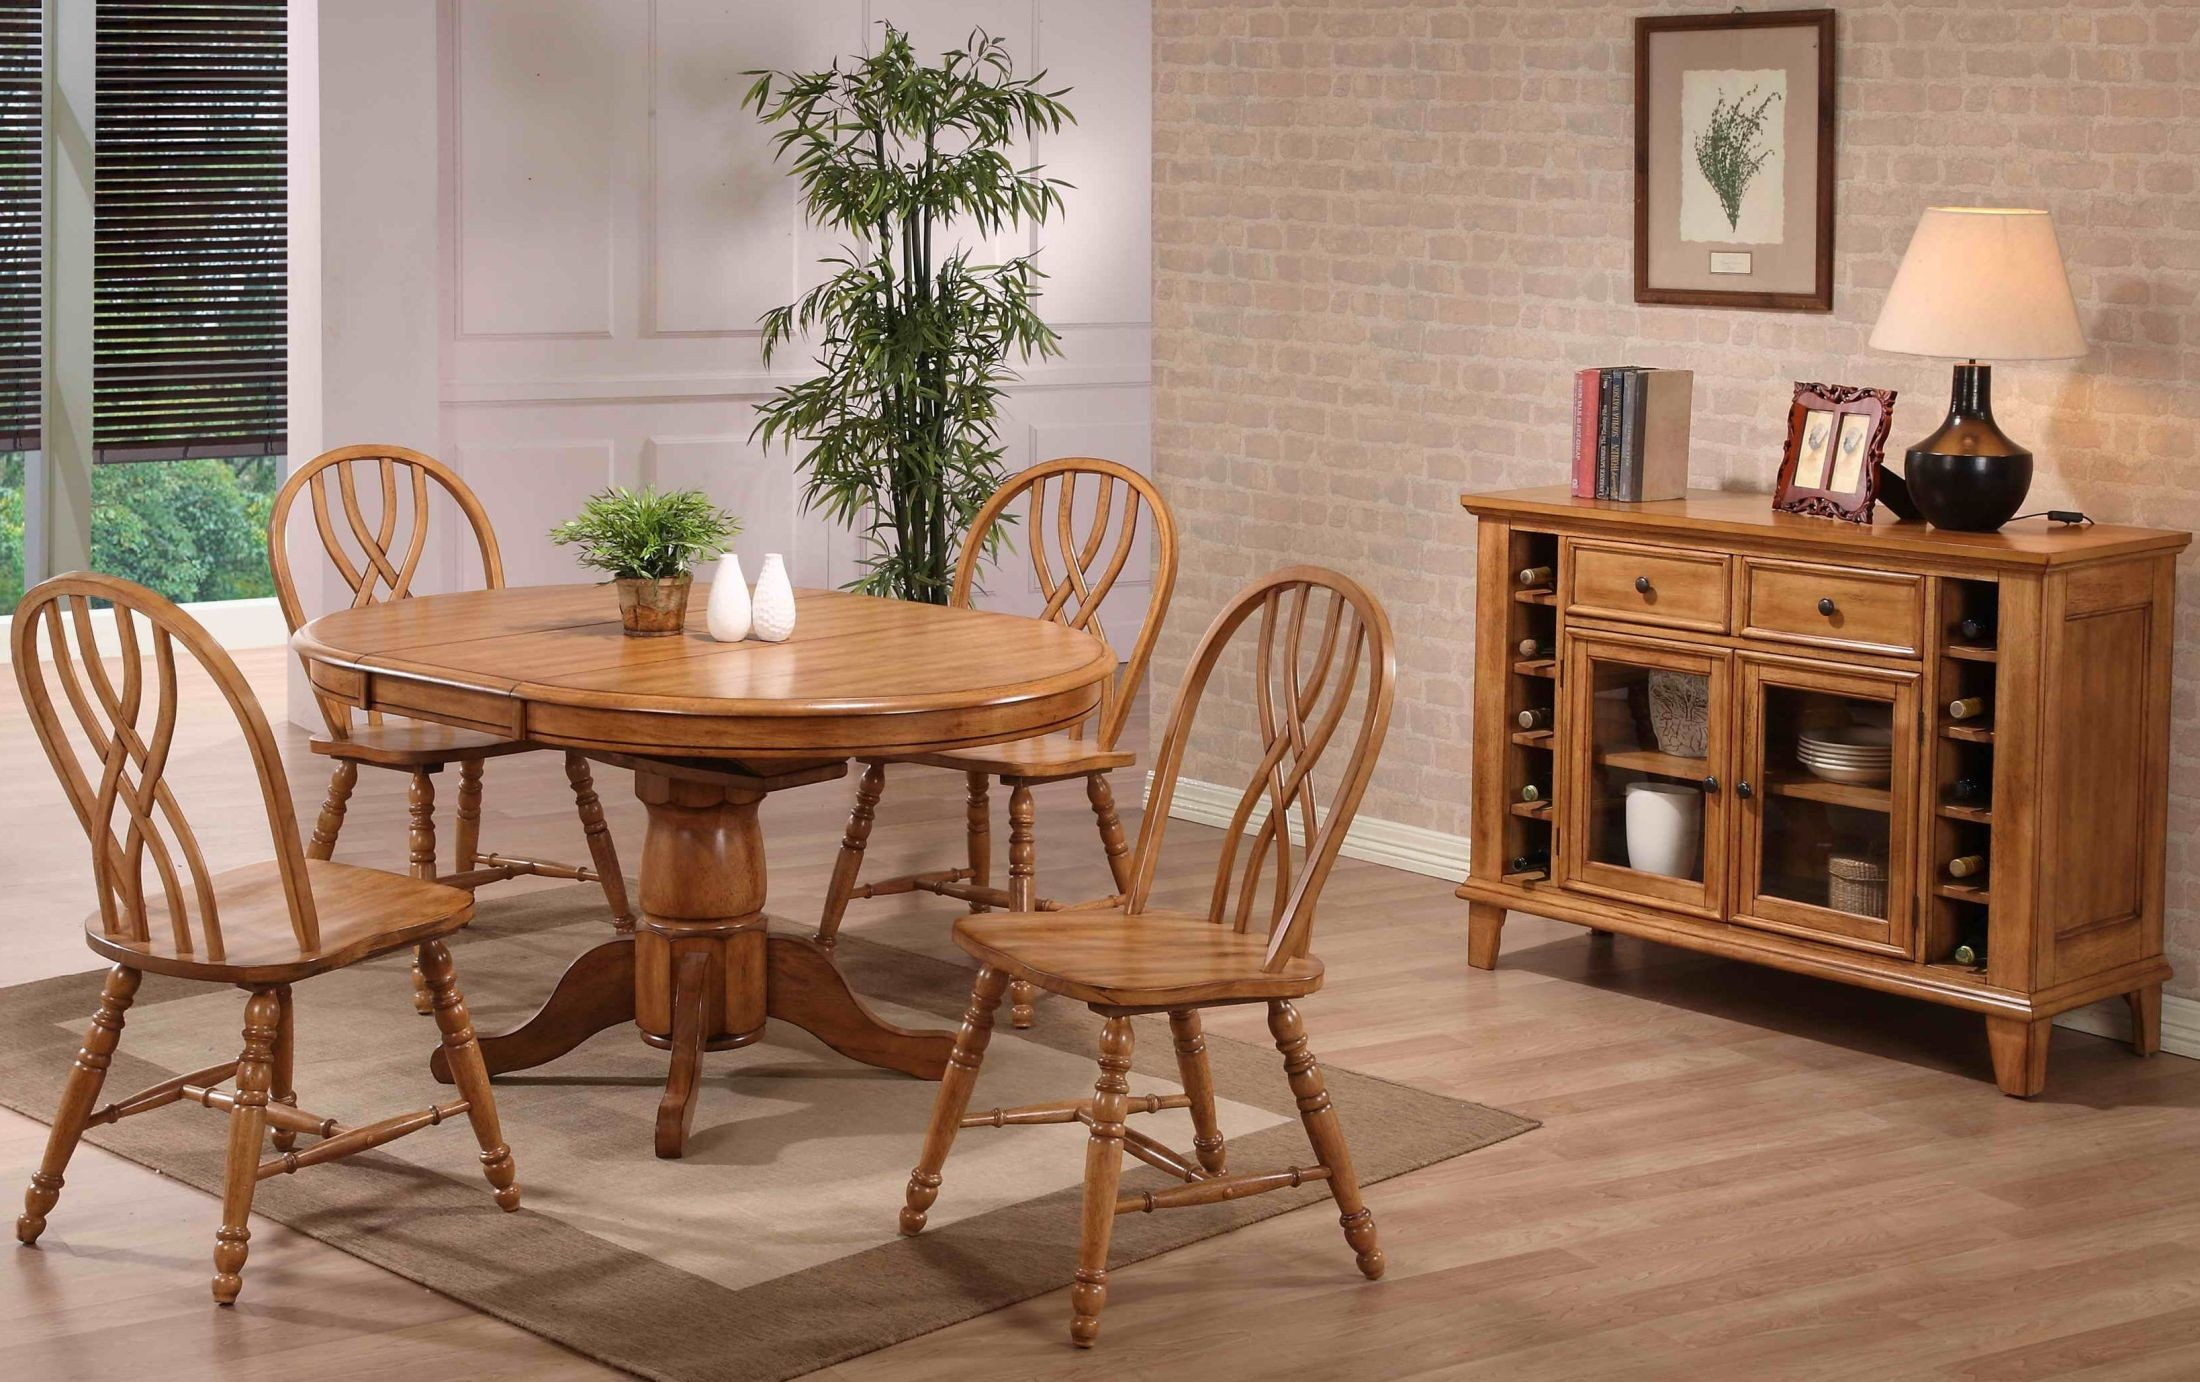 Mason Gray Dining Chair | Pier 1 Imports